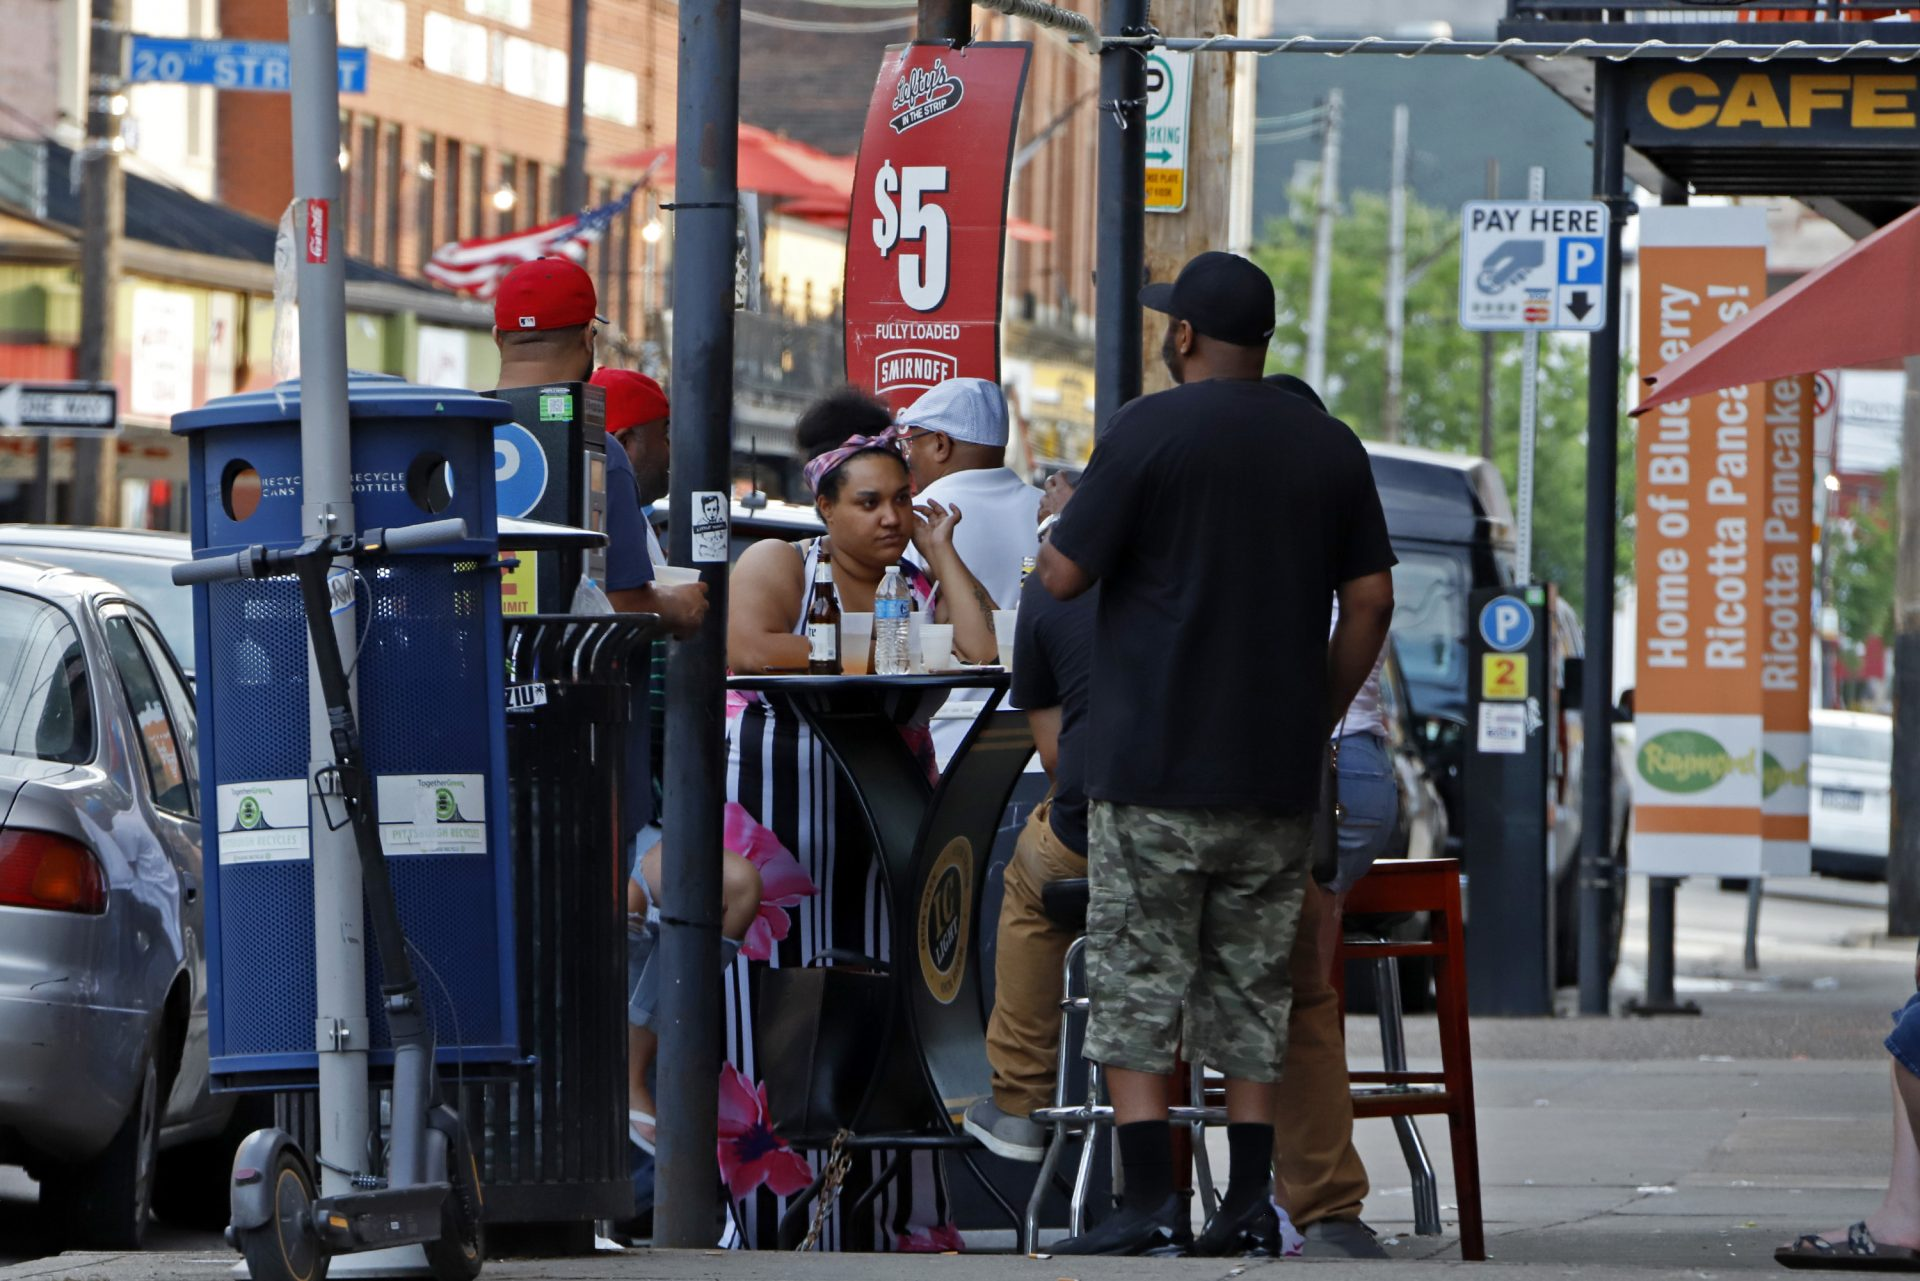 People gather at tables outside Lefty's bar in the Strip District of downtown Pittsburgh Sunday, June 28, 2020.